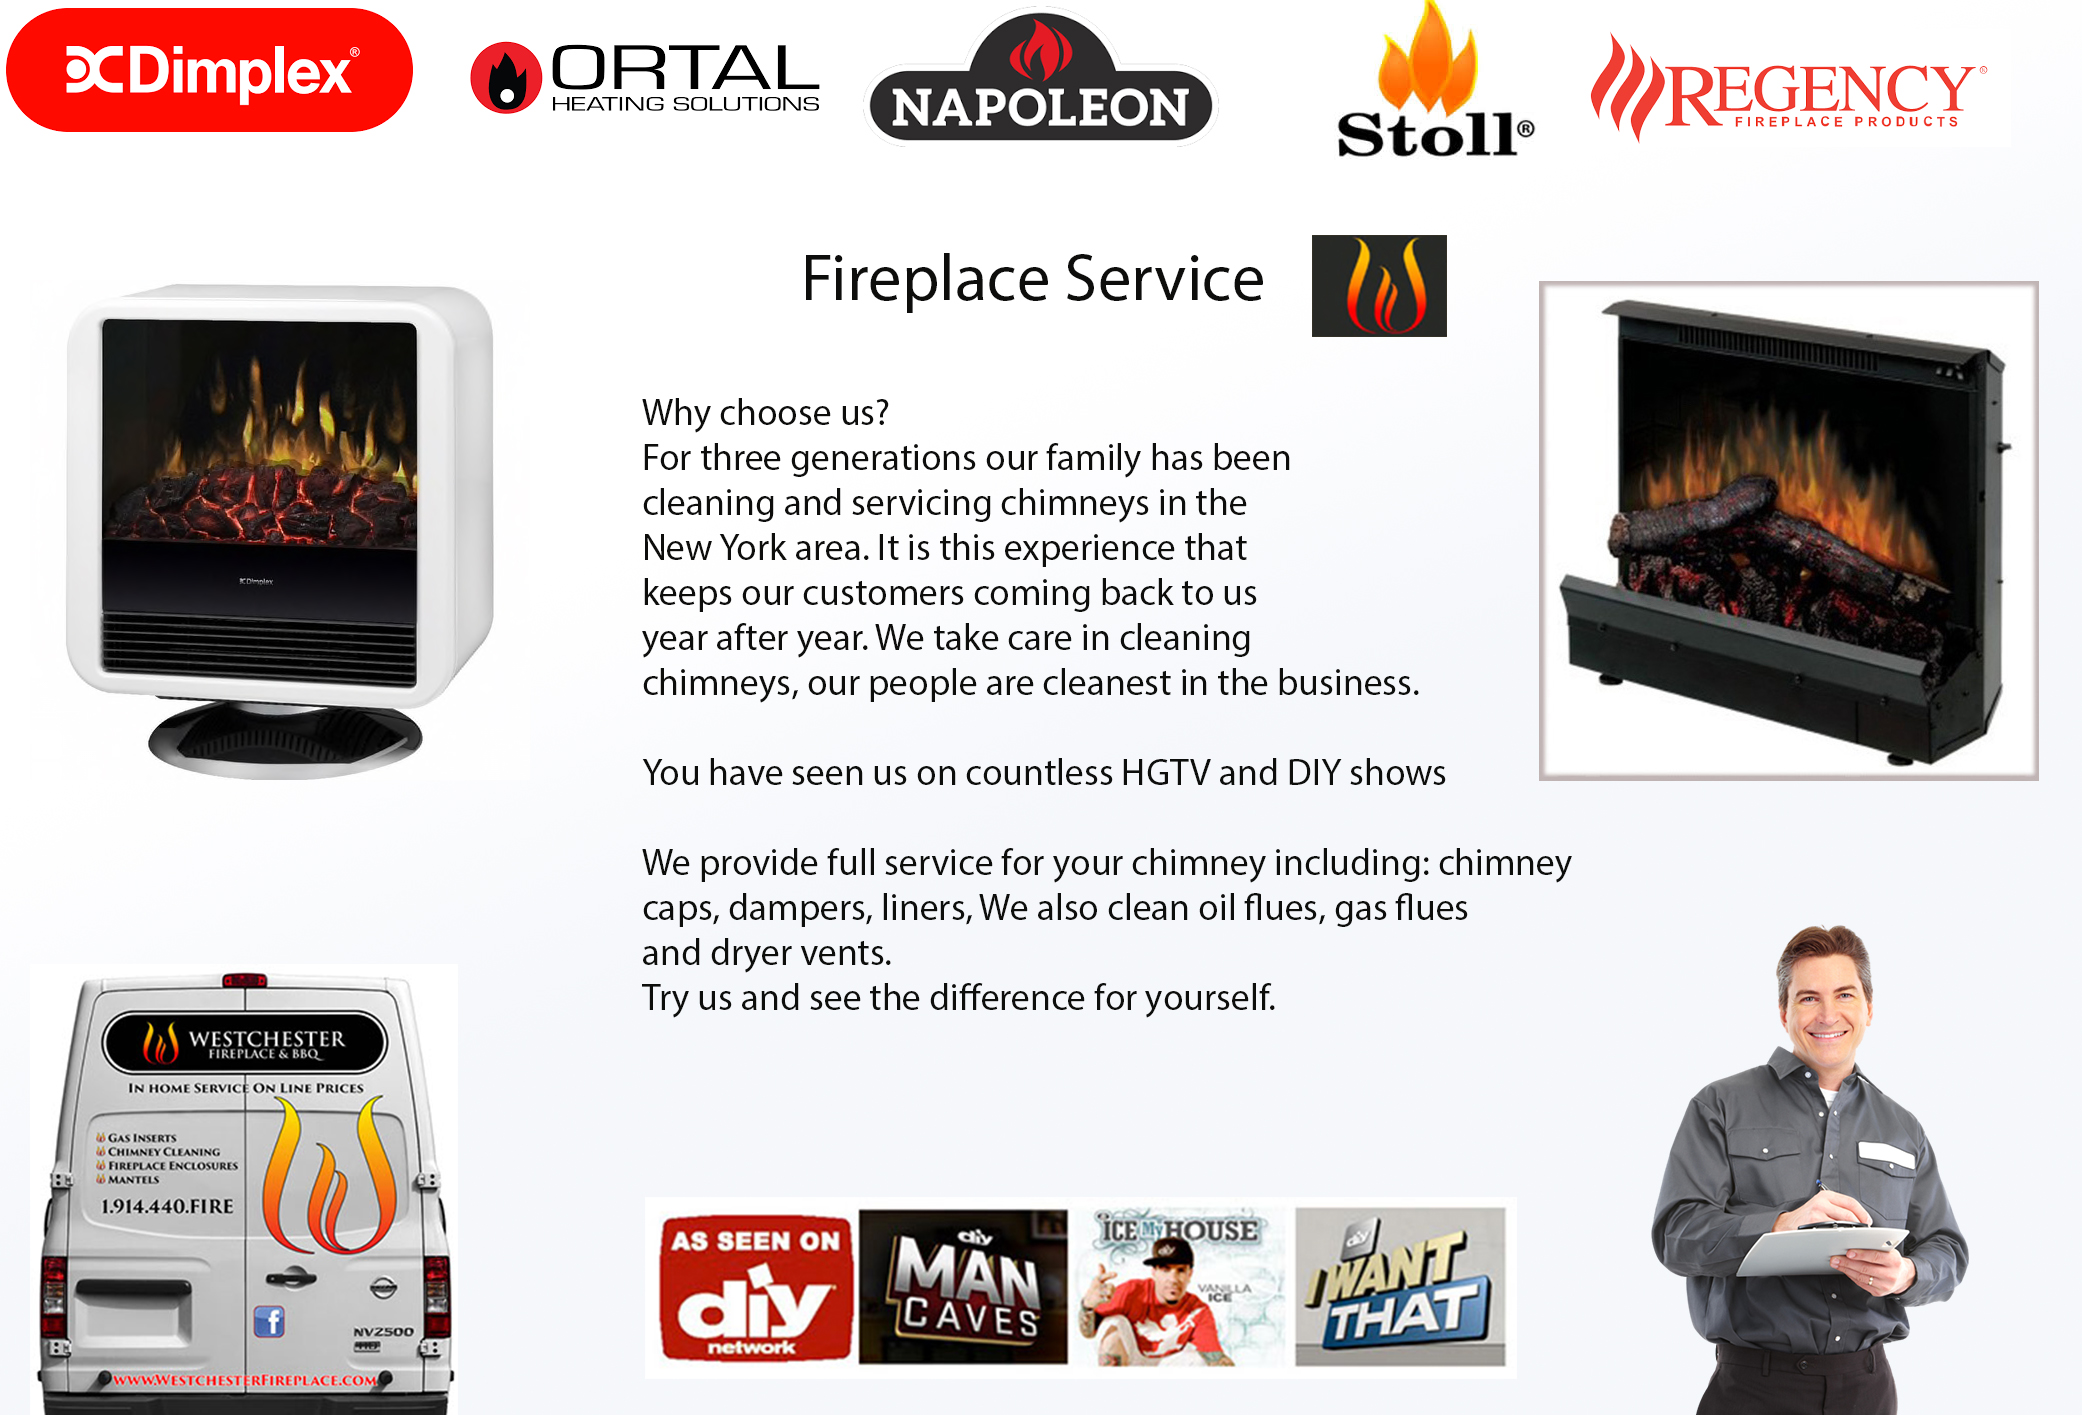 fix-fireplace-landing-page-copy.jpg